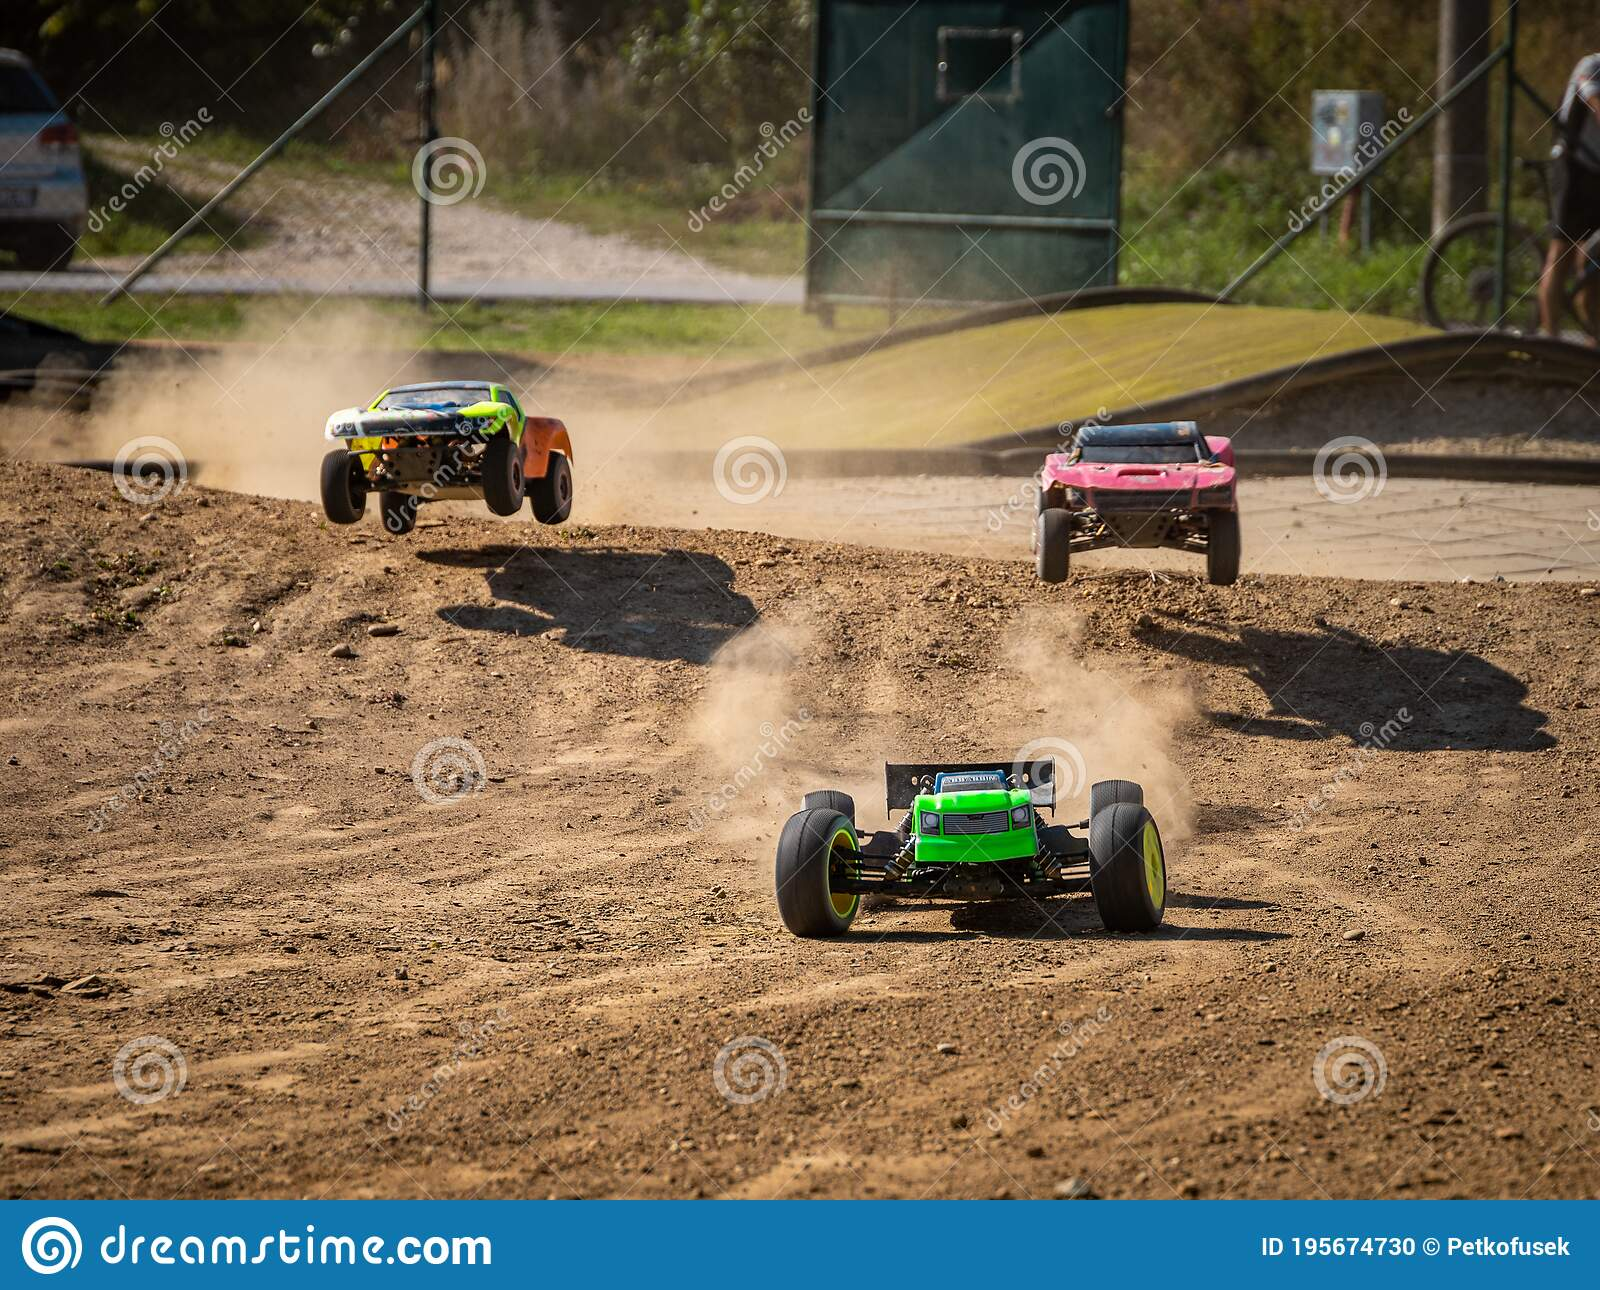 135 Rc Racing Track Photos Free Royalty Free Stock Photos From Dreamstime